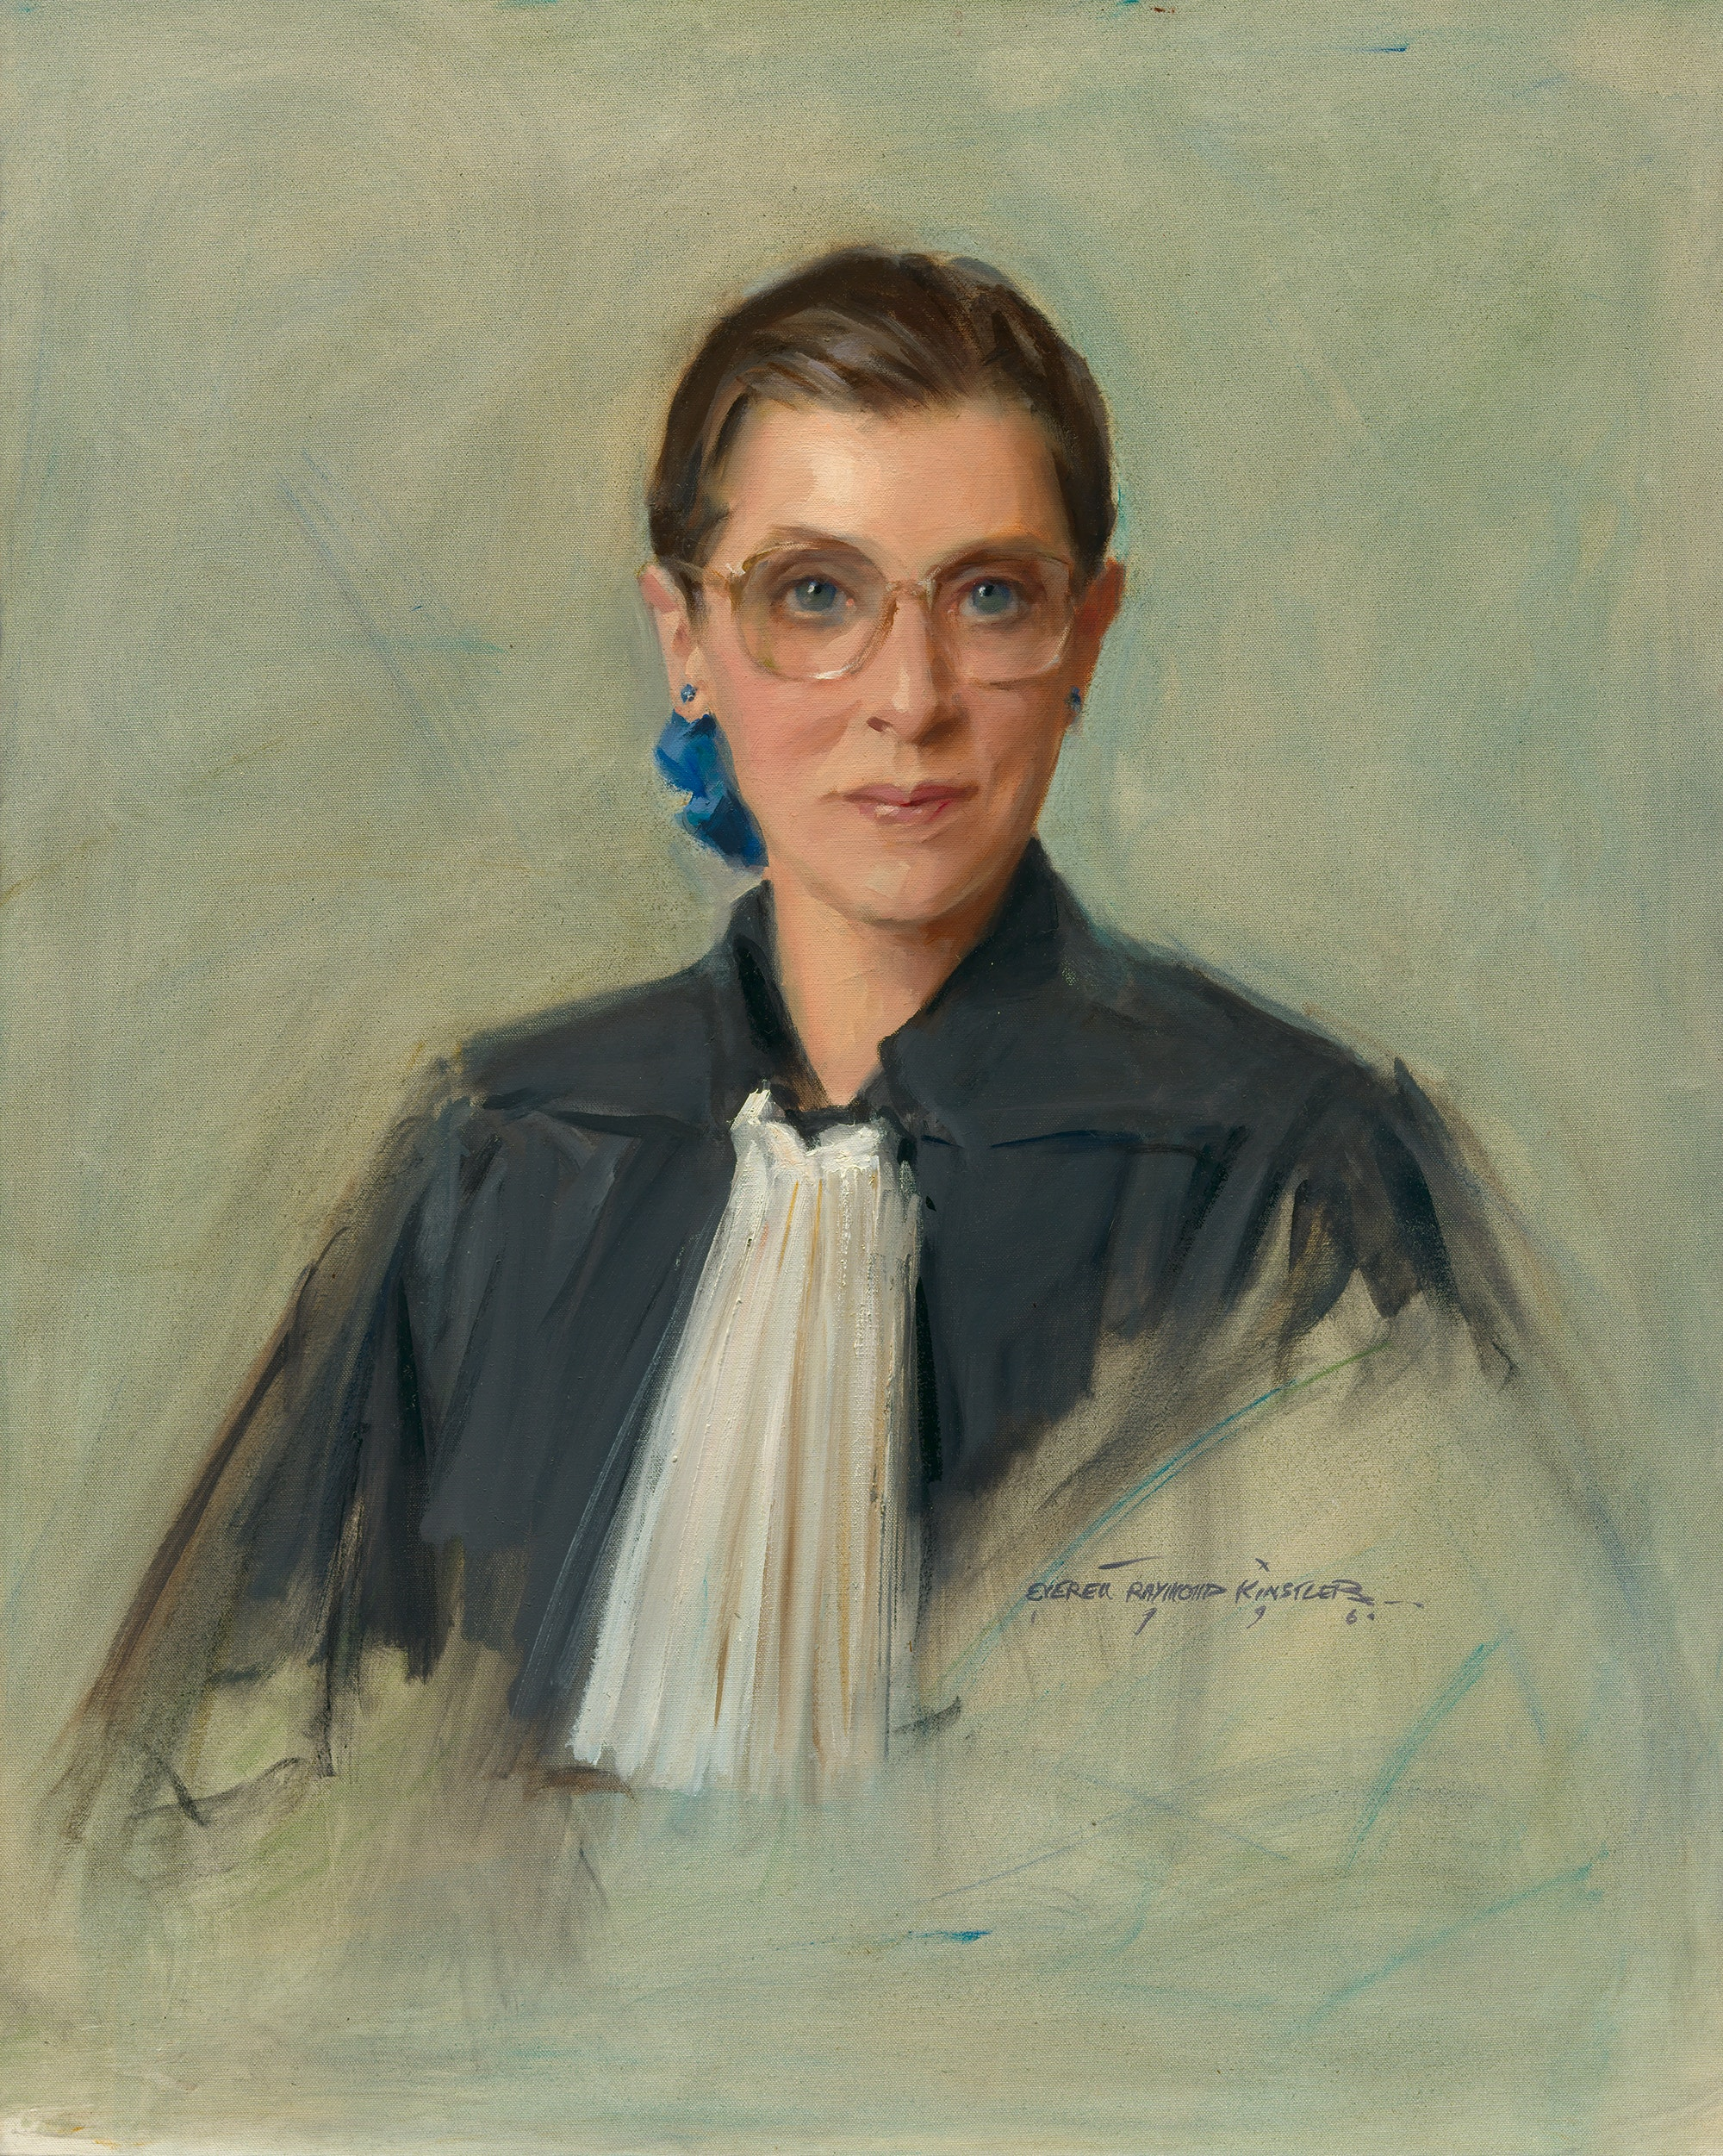 Ruth Bader Ginsburg, by Everett Raymond Kinstler, 1996. Oil on canvas. National Portrait Gallery, Smithsonian Institution.